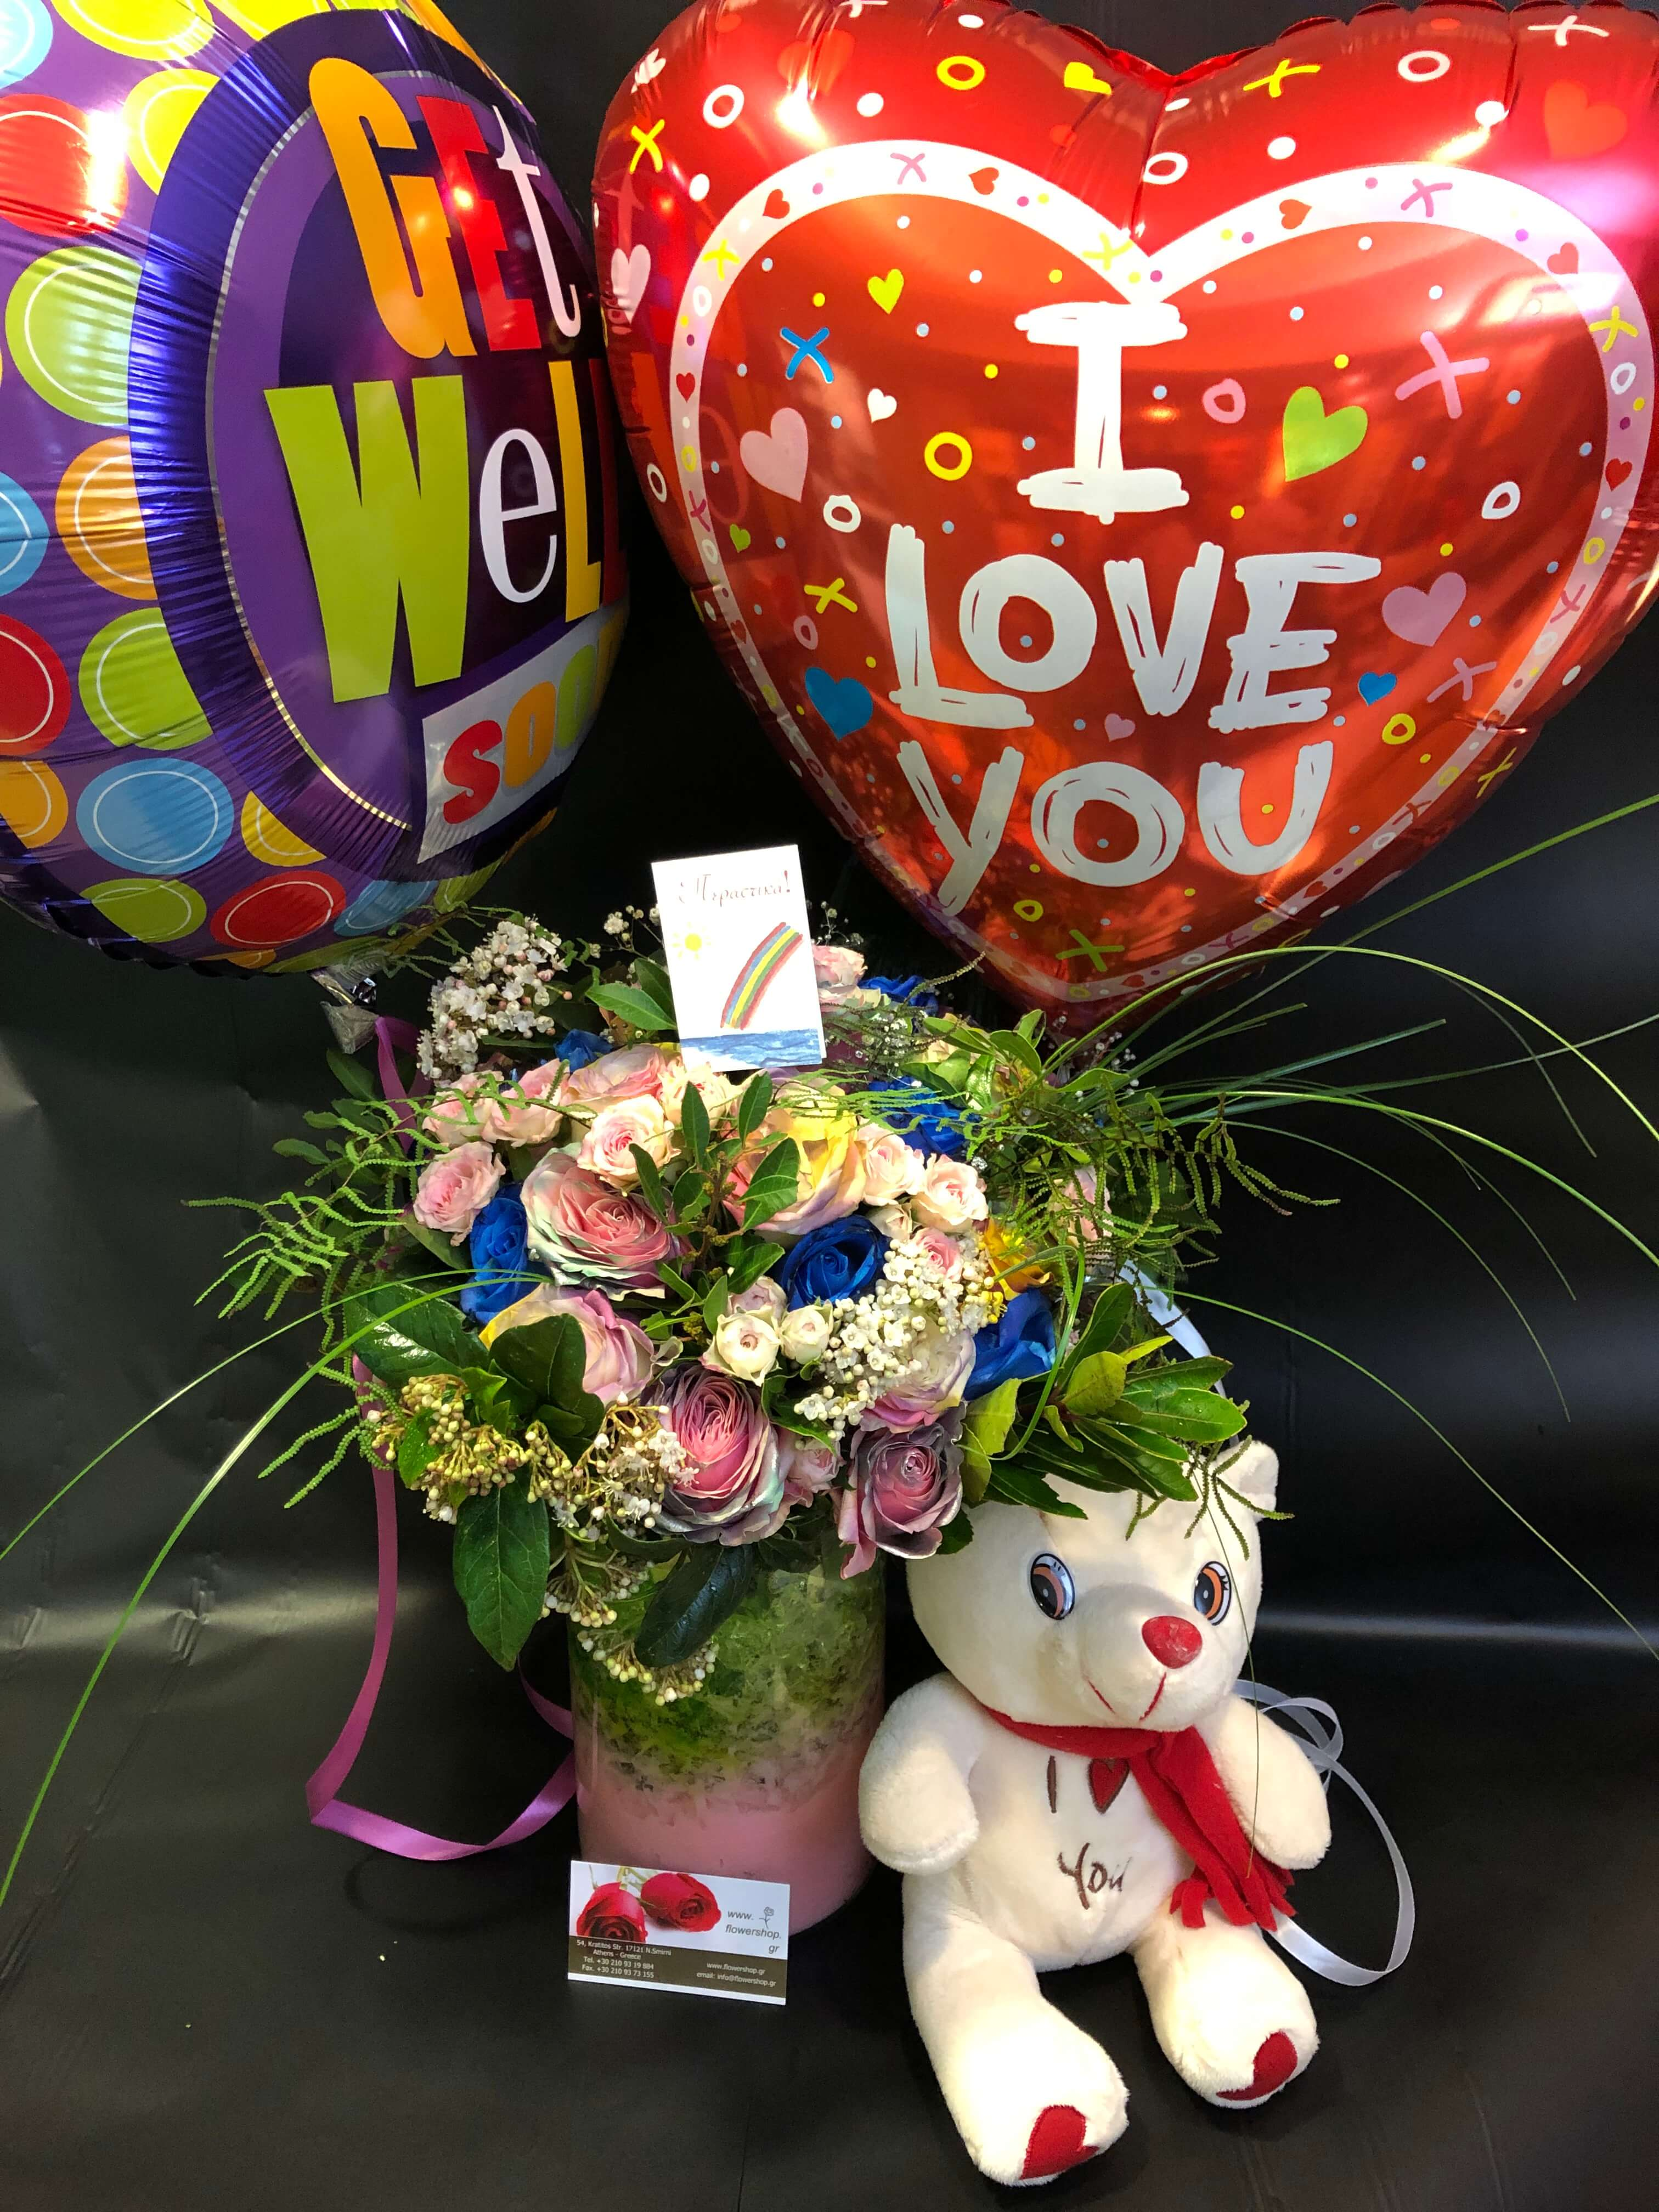 Get Well Soon With Flowers Vase Balloons Teddy Decoration Flowershop Gr